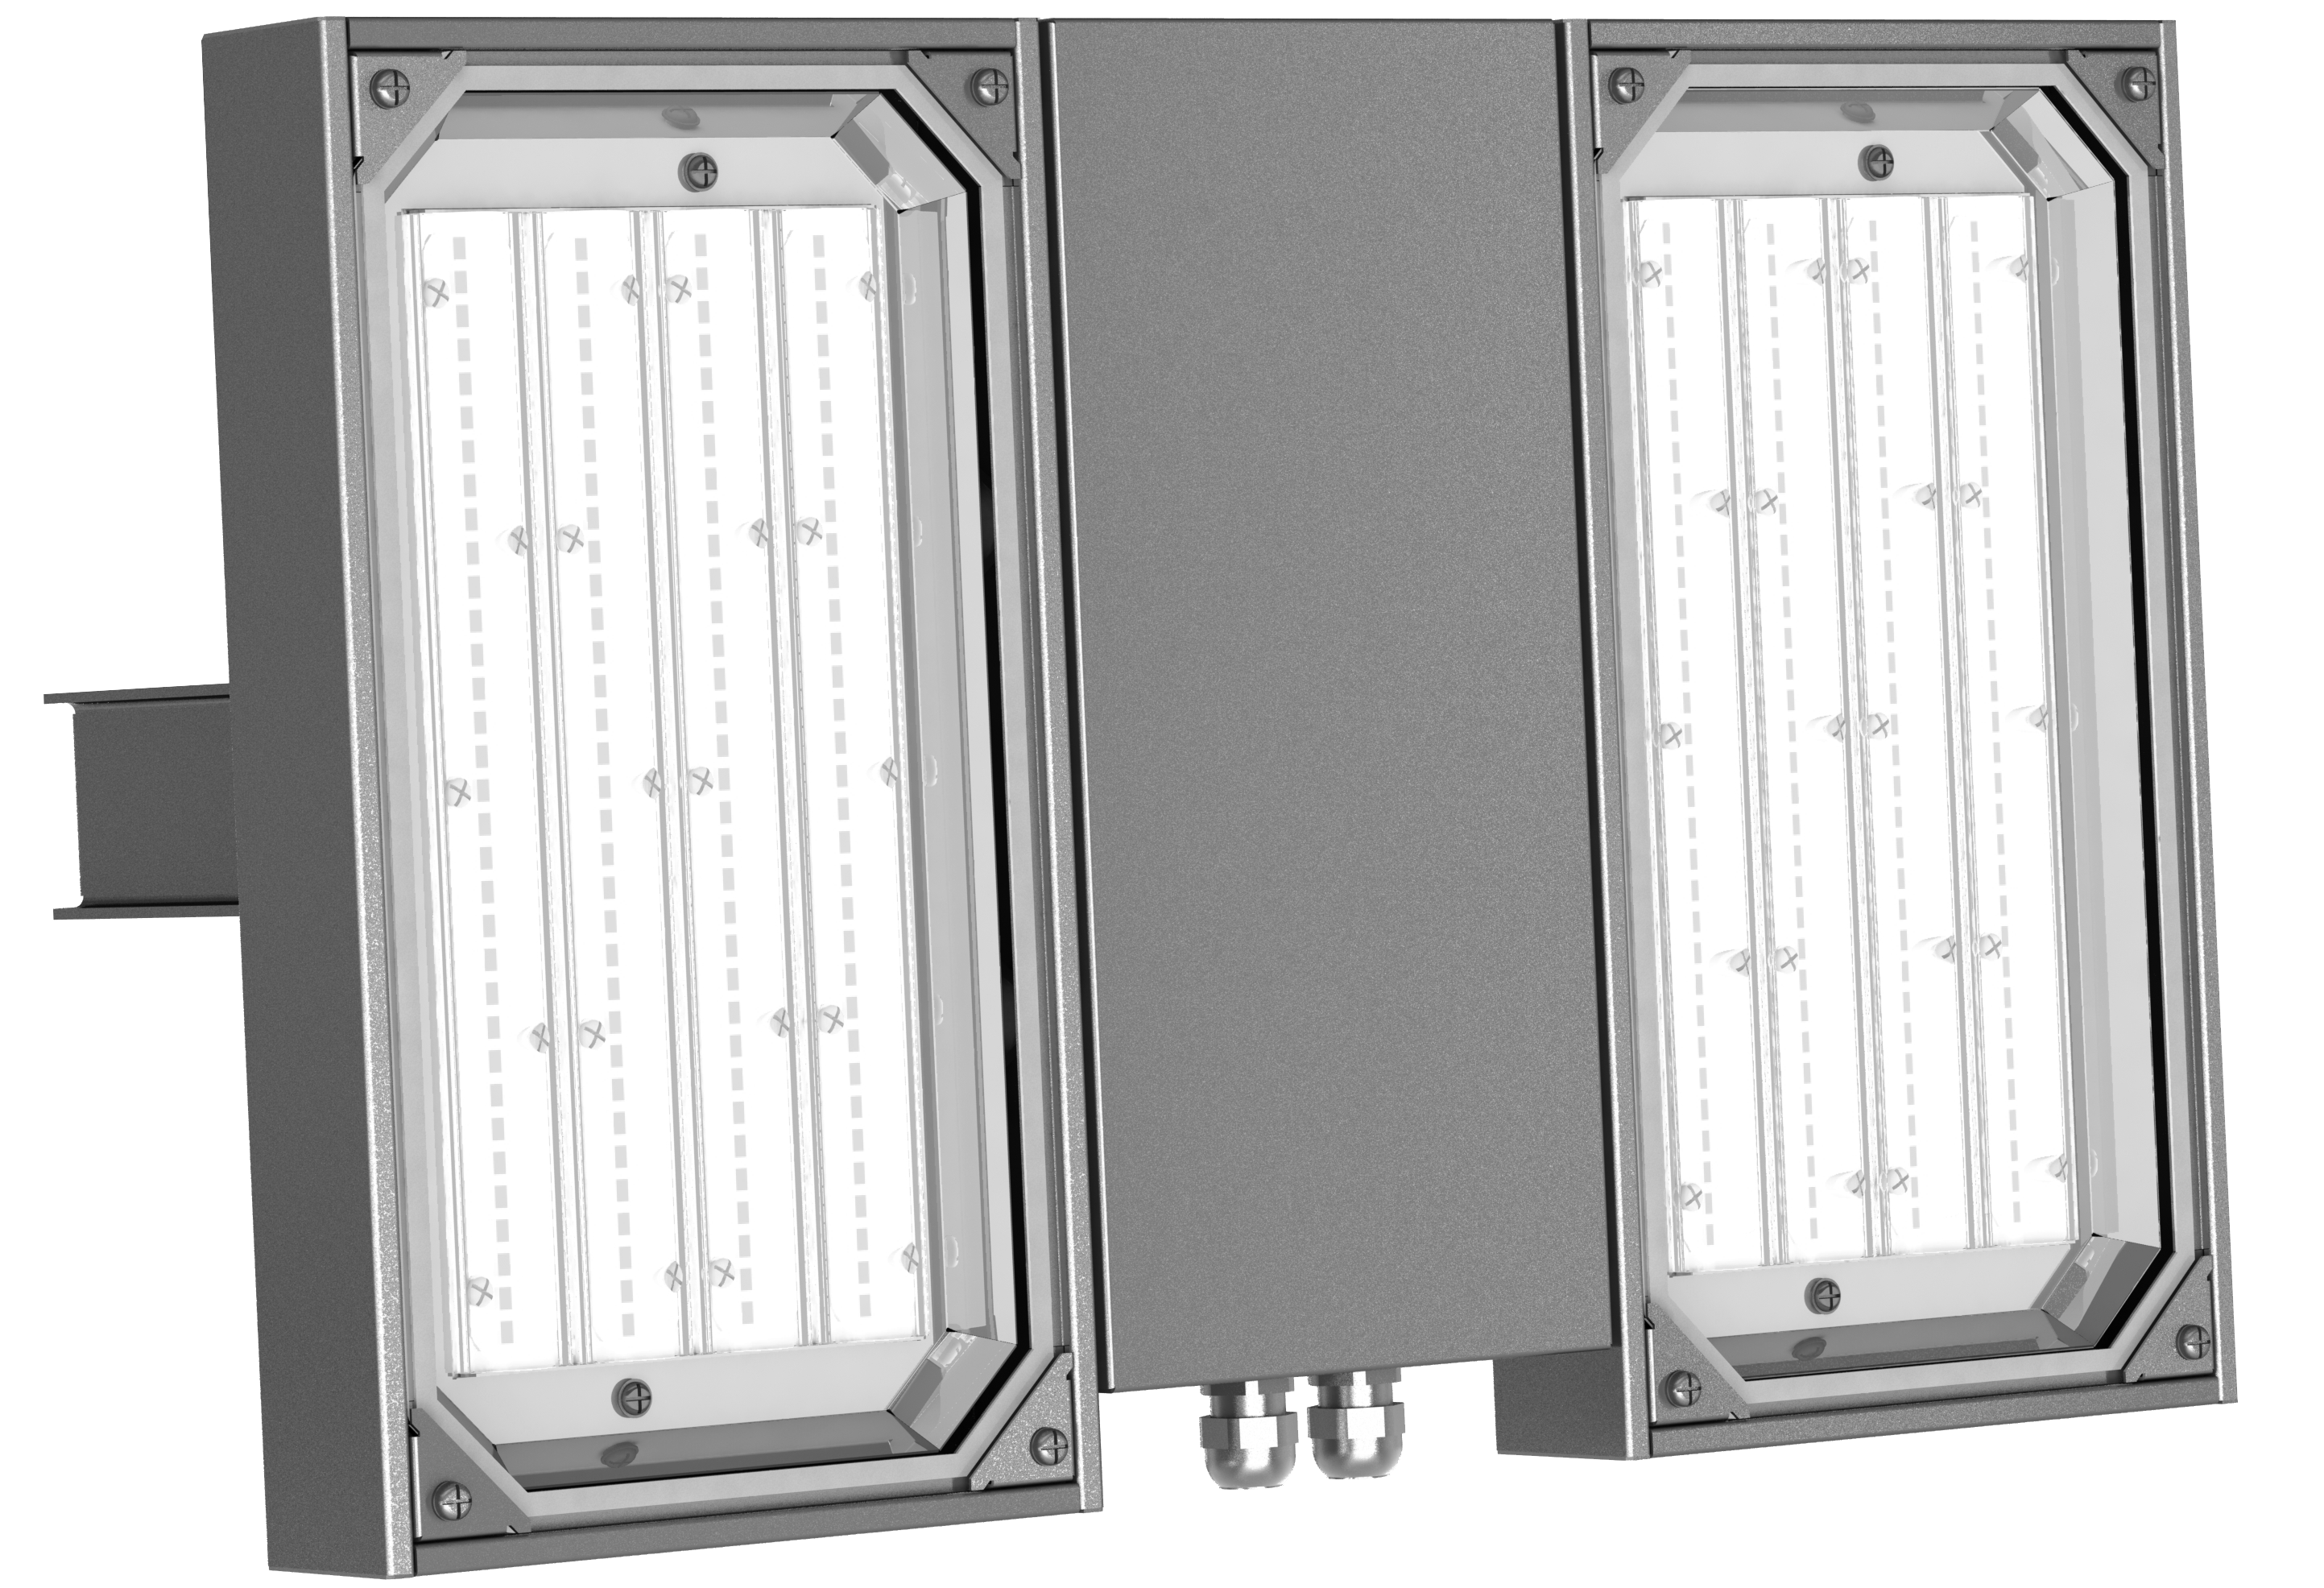 Explosion-proof light fittings ES EXL380LED